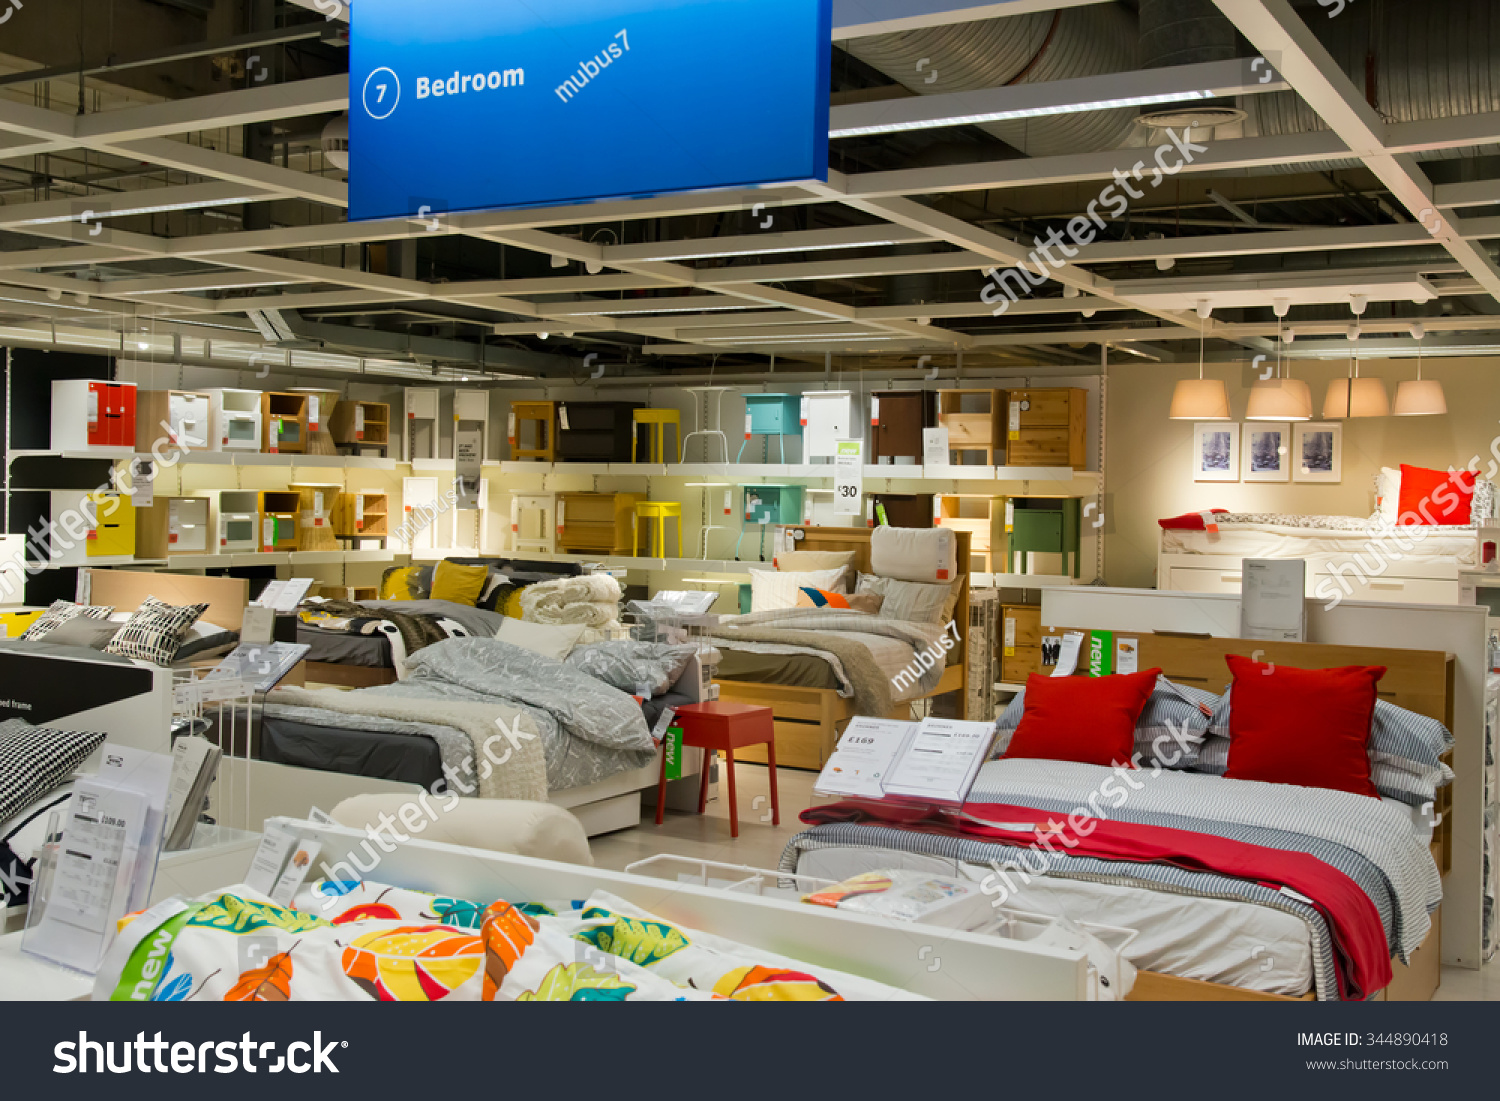 Stores Lamelles Ikea The Gallery For Ikea Store Ikea To Open  # Meubles Stores A Lamelles